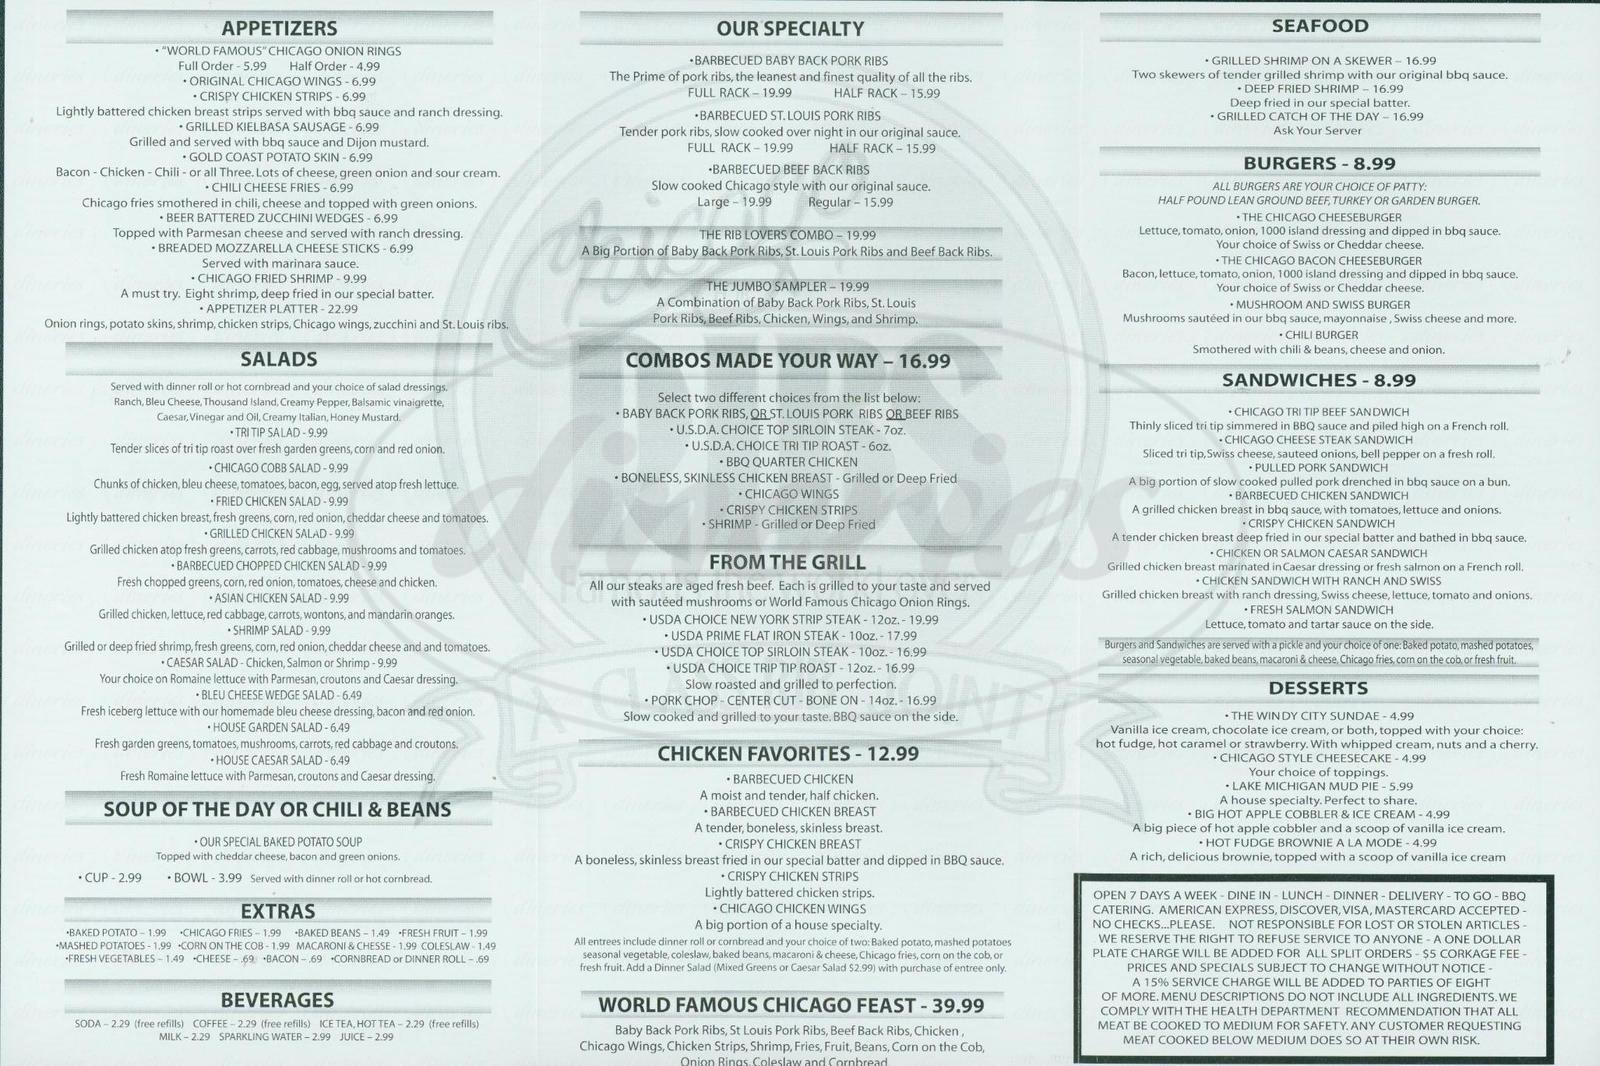 menu for Chicago for Ribs